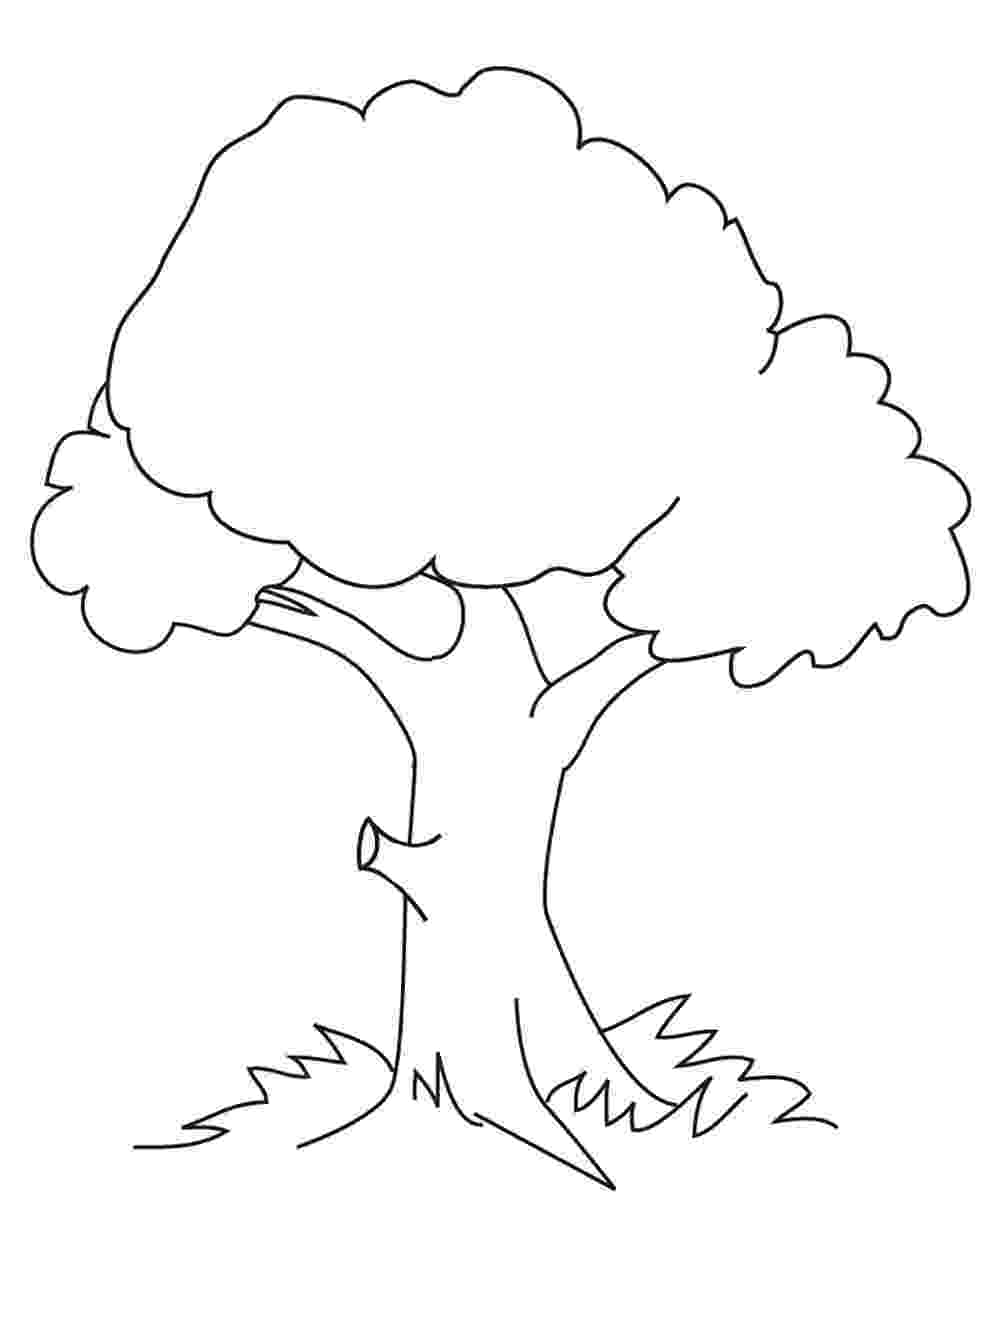 coloring book pages trees free printable tree coloring pages for kids cool2bkids book pages trees coloring 1 1